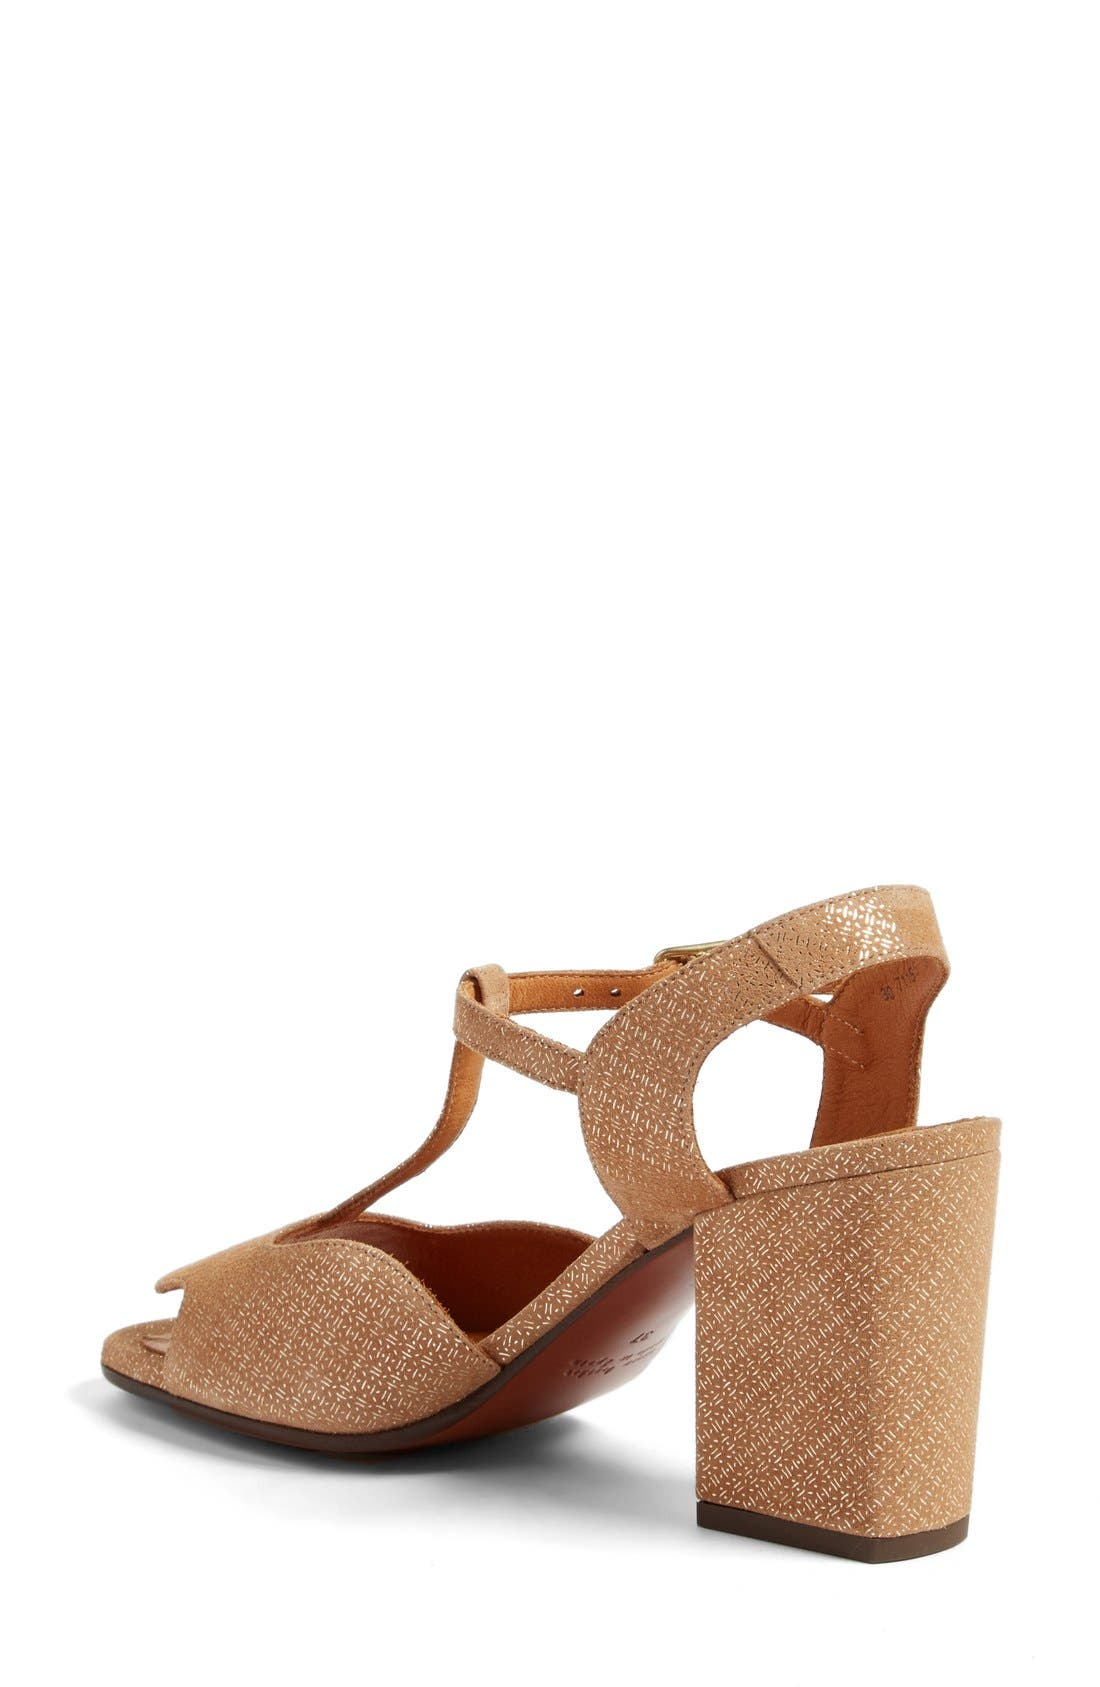 Birthe T-Strap Sandal,                             Alternate thumbnail 2, color,                             250